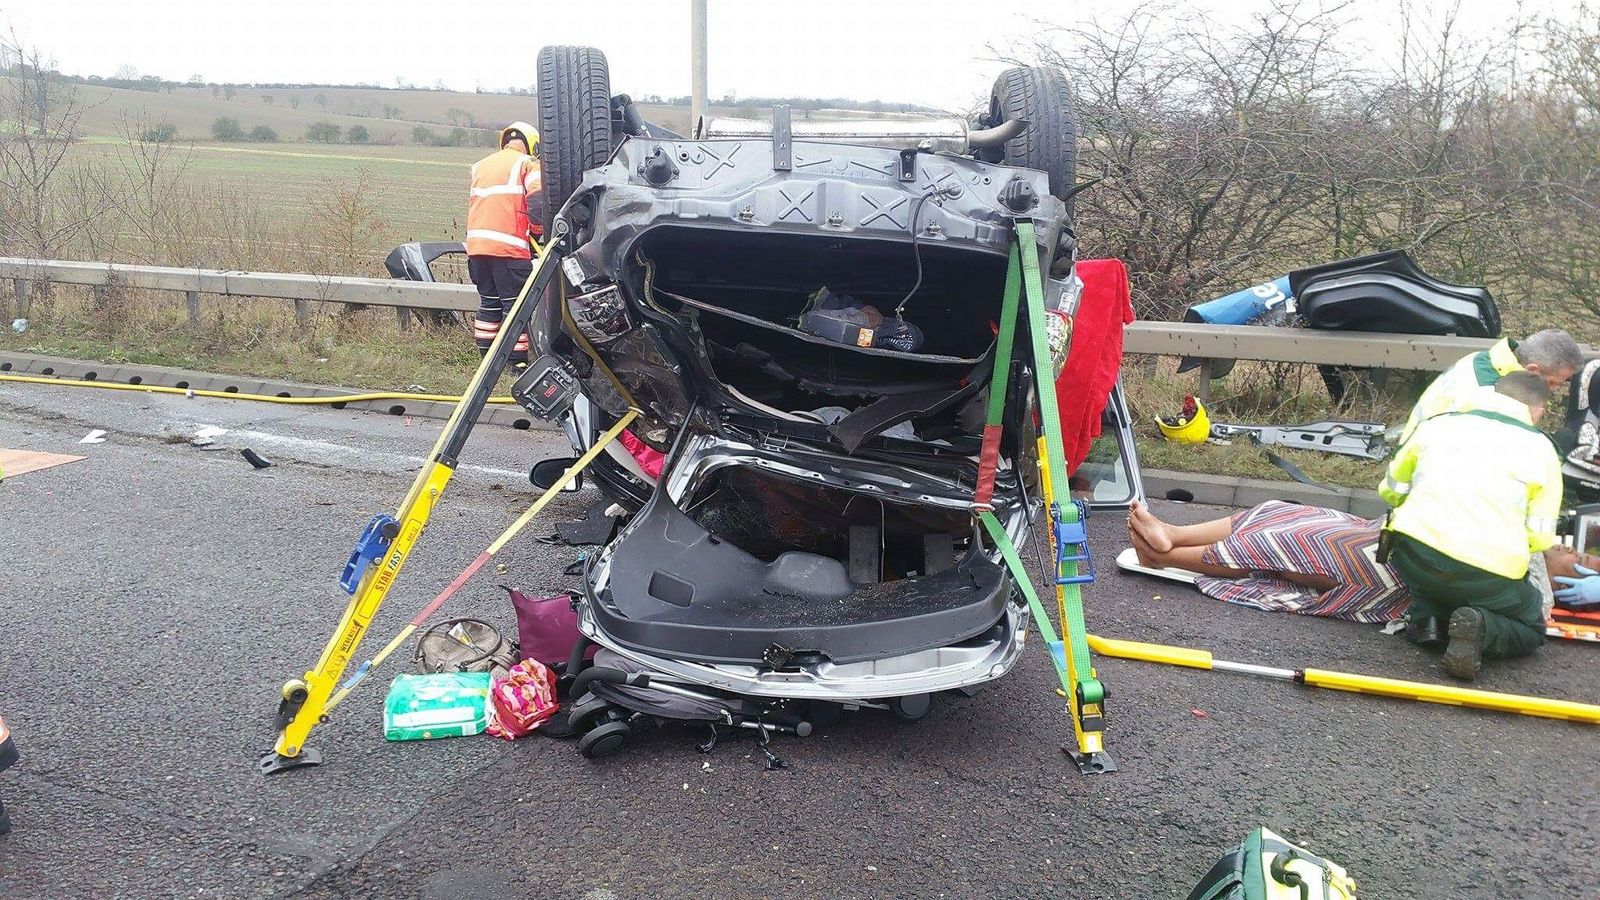 Drink-drive mum flips car 14ft with toddler in back